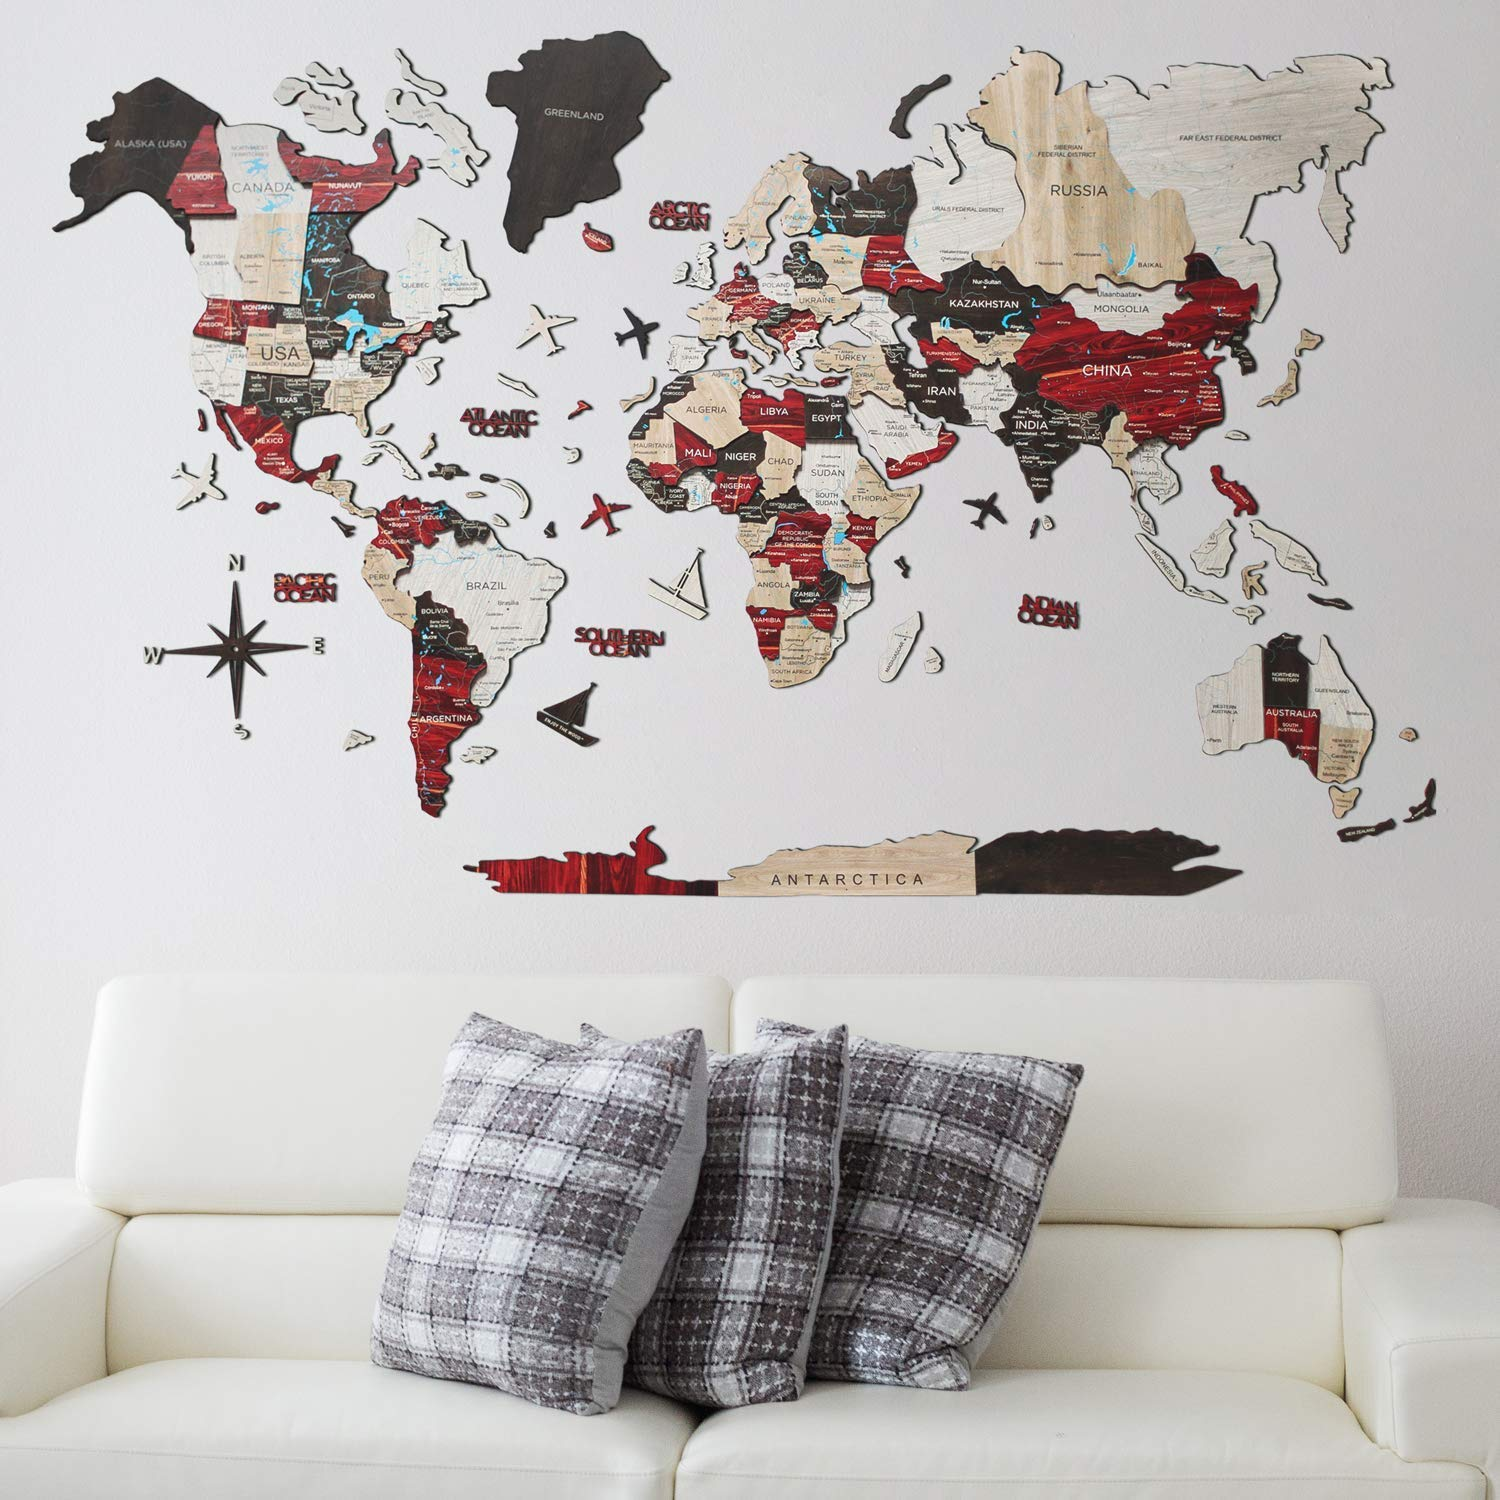 Home Decor 3D Wood World Map URBAN color Wall Art. Large Wall Decor - World Travel Map All Sizes (M,L,XL,XXL). Any Occasion Gift Idea - Wall Art For Home & Kitchen or Office